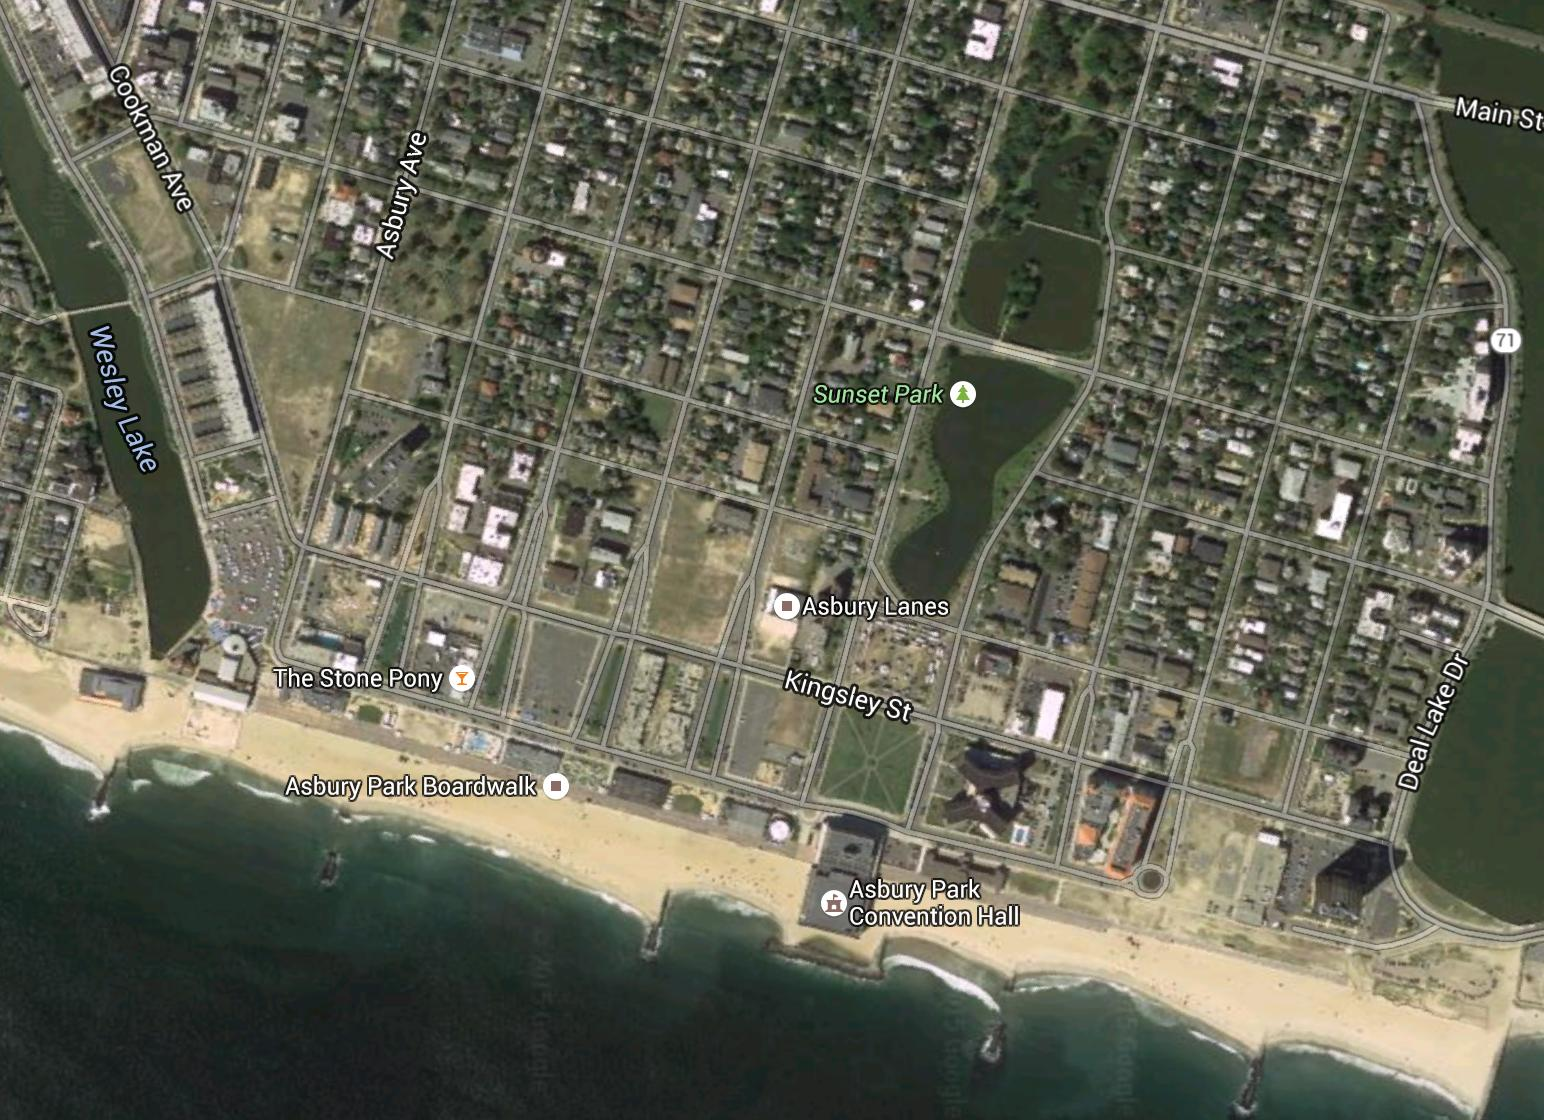 Asbury Park Waterfront Redevelopment